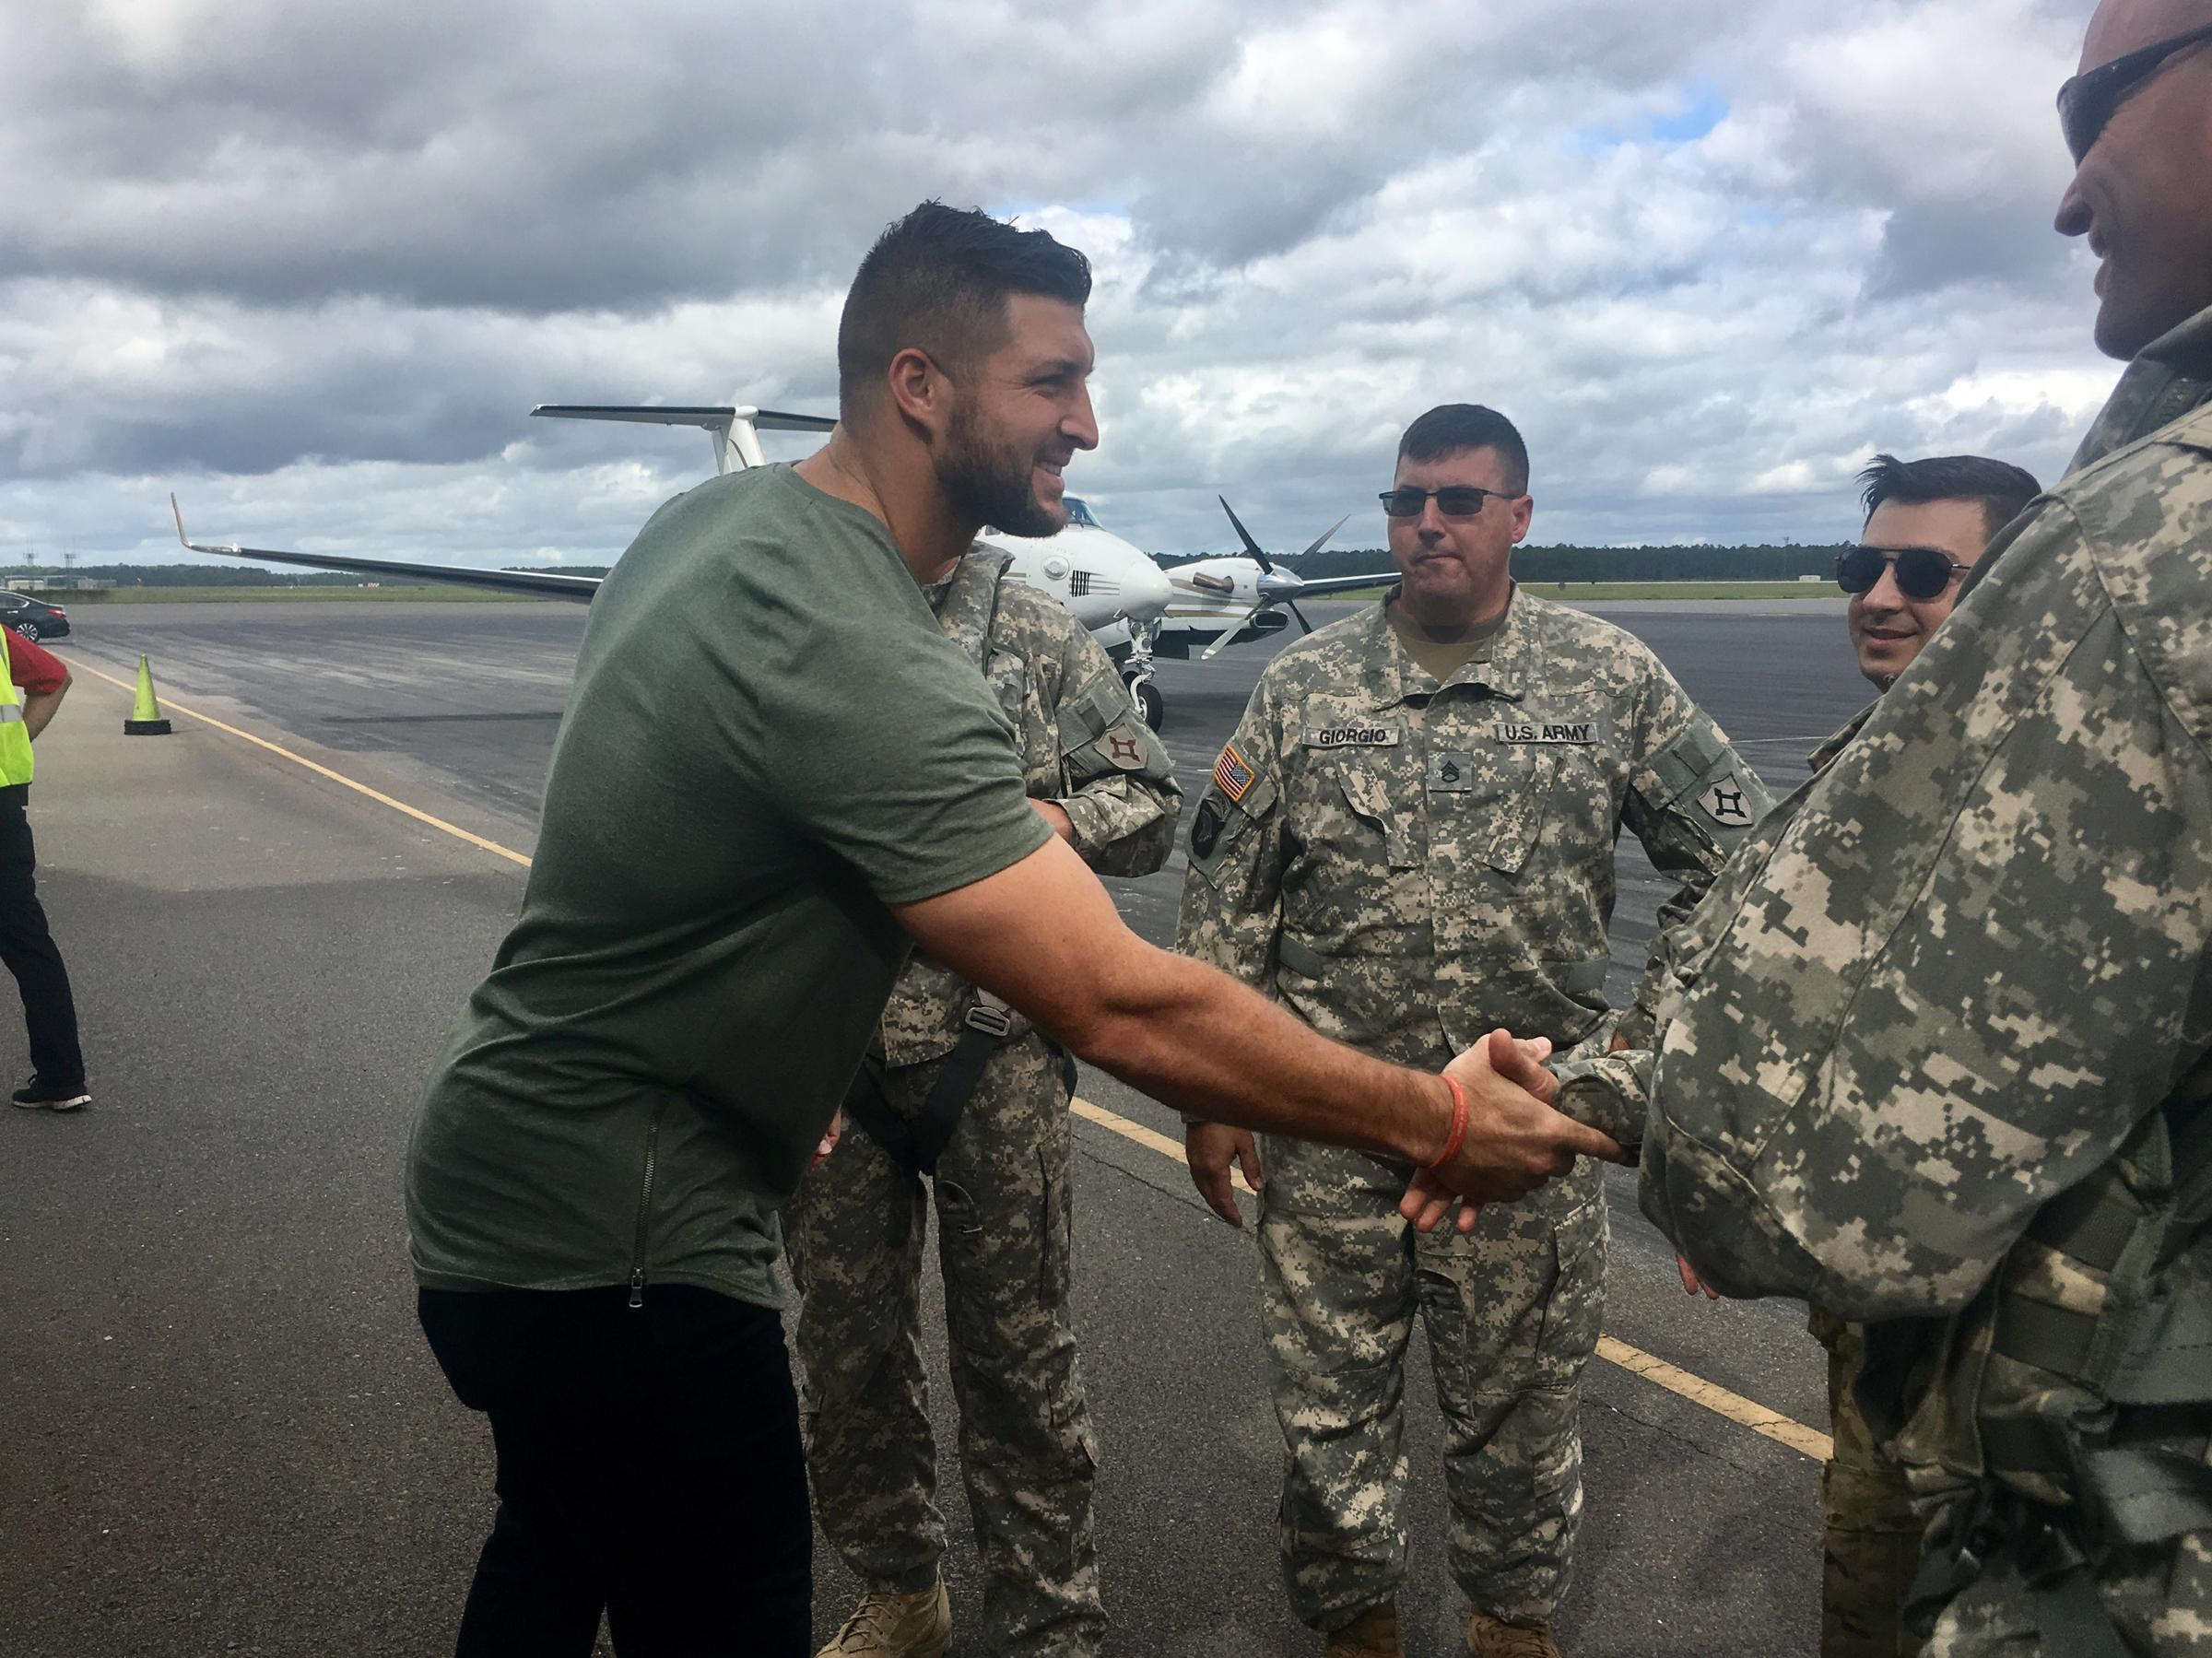 Tim Tebow Plays Cheerleader For Hurricane Irma Relief Efforts In Northeast Florida